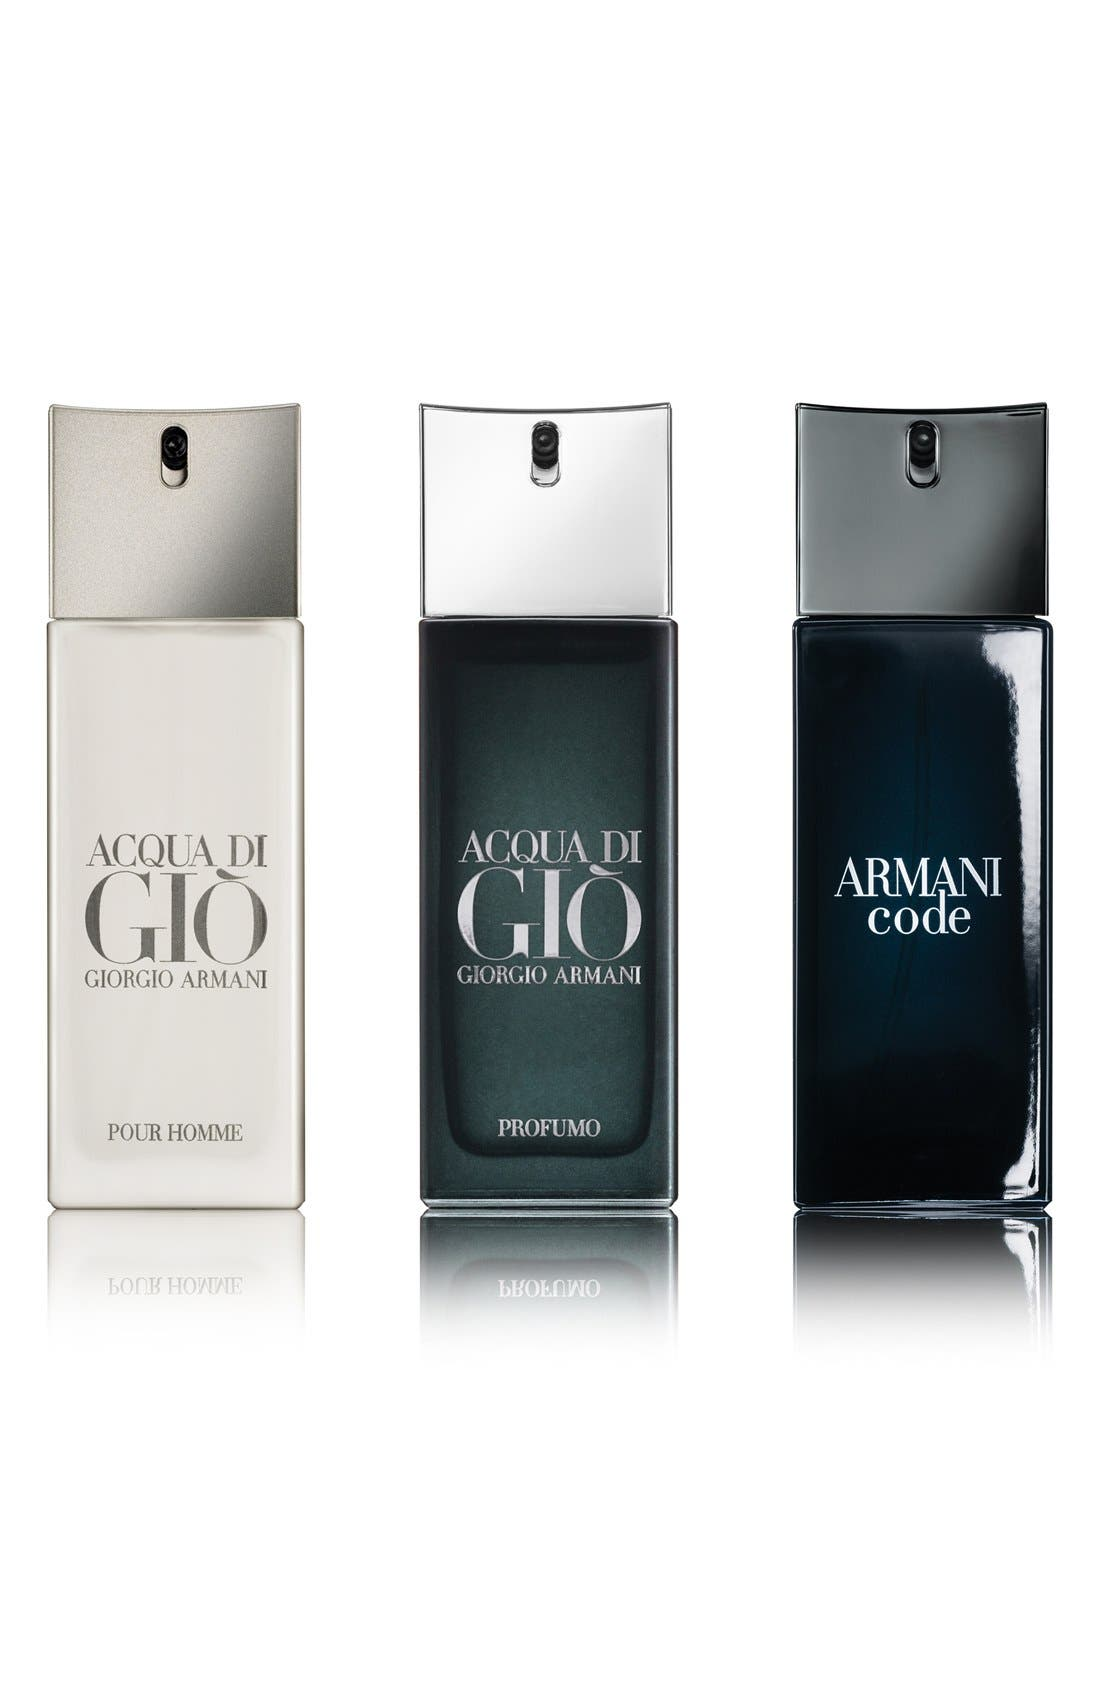 Giorgio Armani Men's Travel Spray Trio ($115 Value)